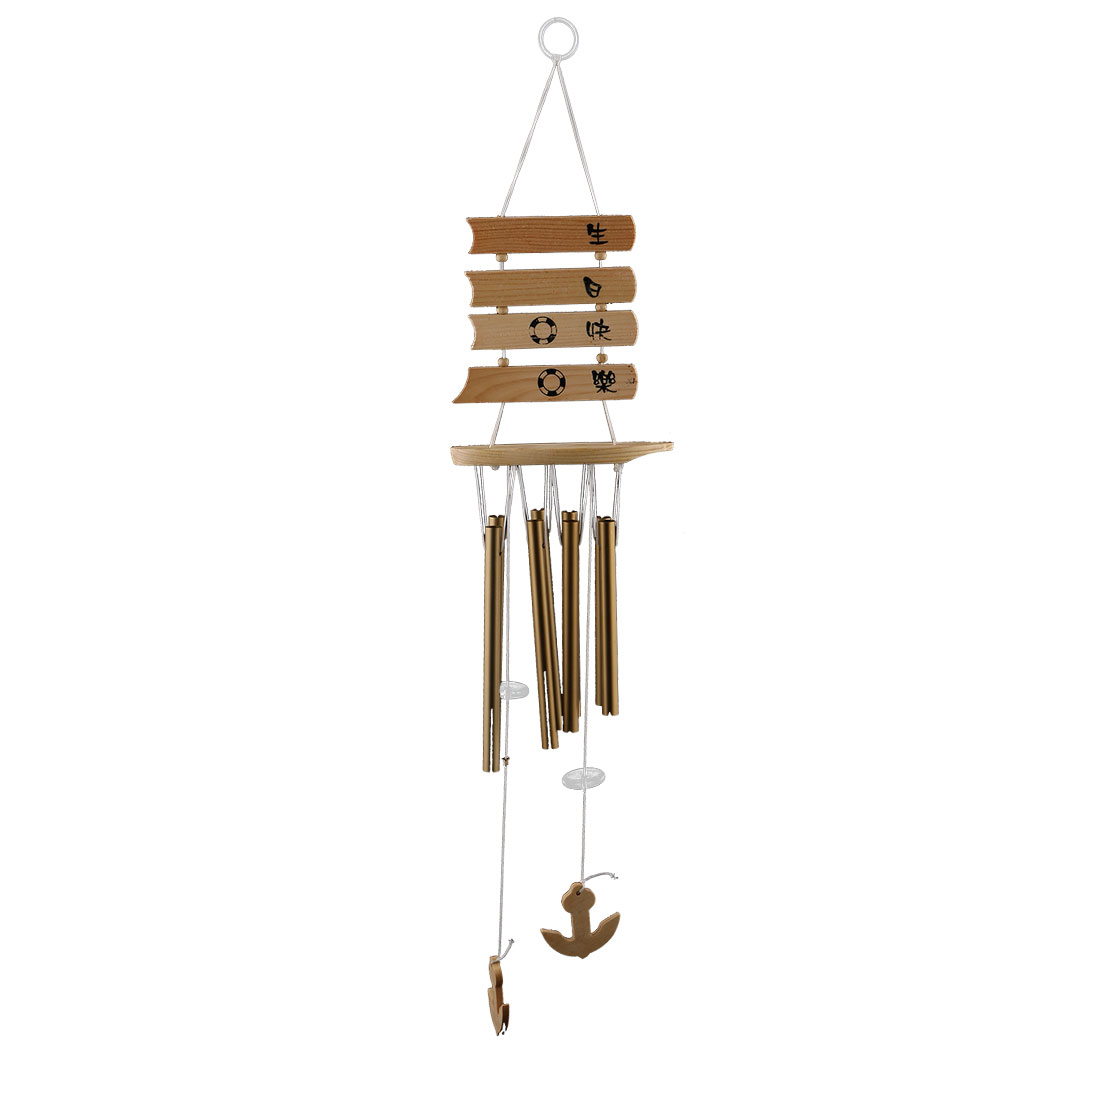 Living Room Metal Tubes Hanging Birthday Gift Adornment Wind Chime Bell Windbell